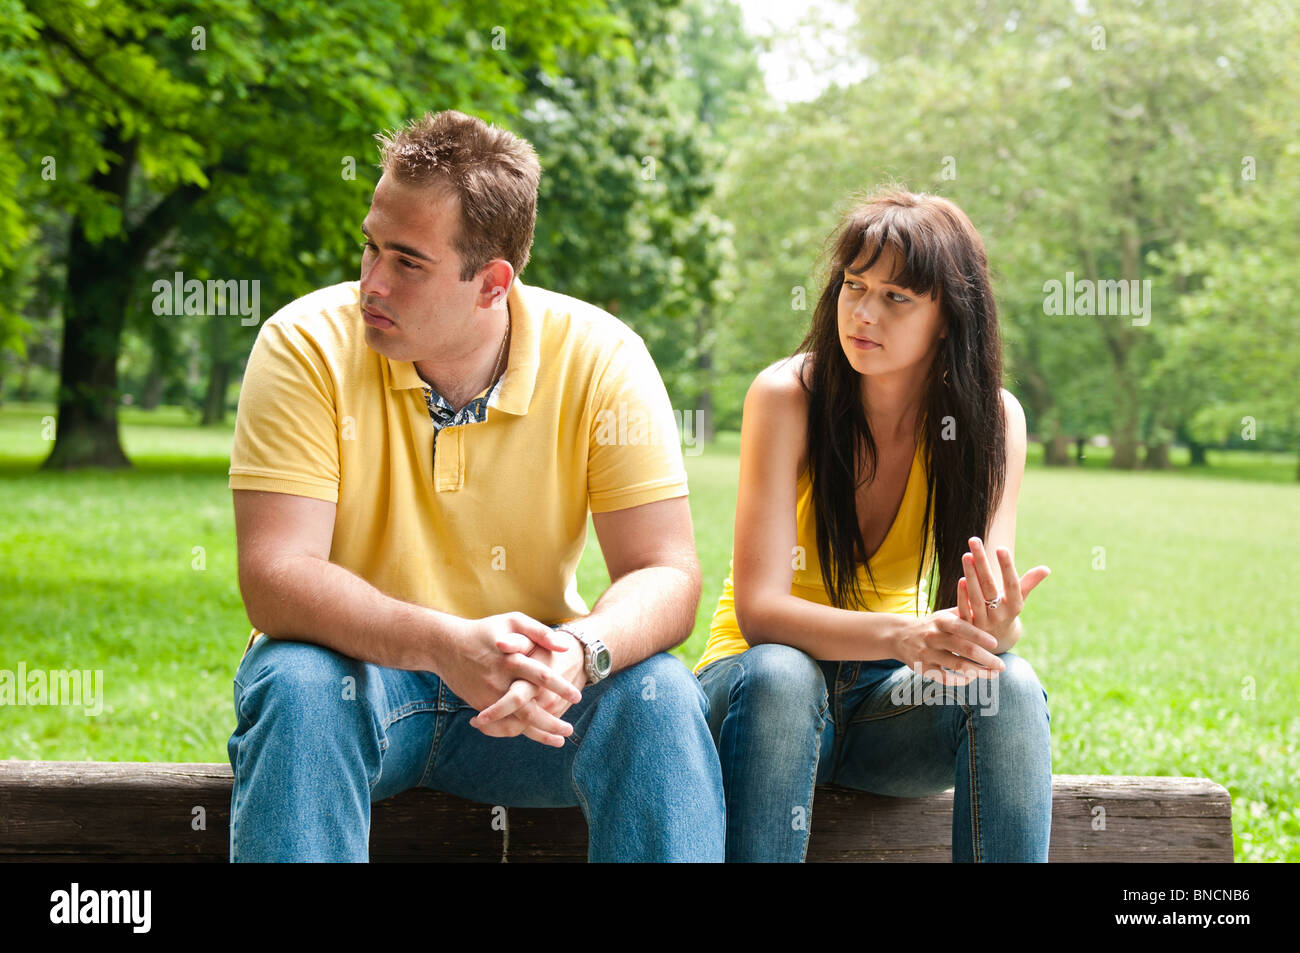 Young couple sitting outdoors on bench having relationship problems - Stock Image